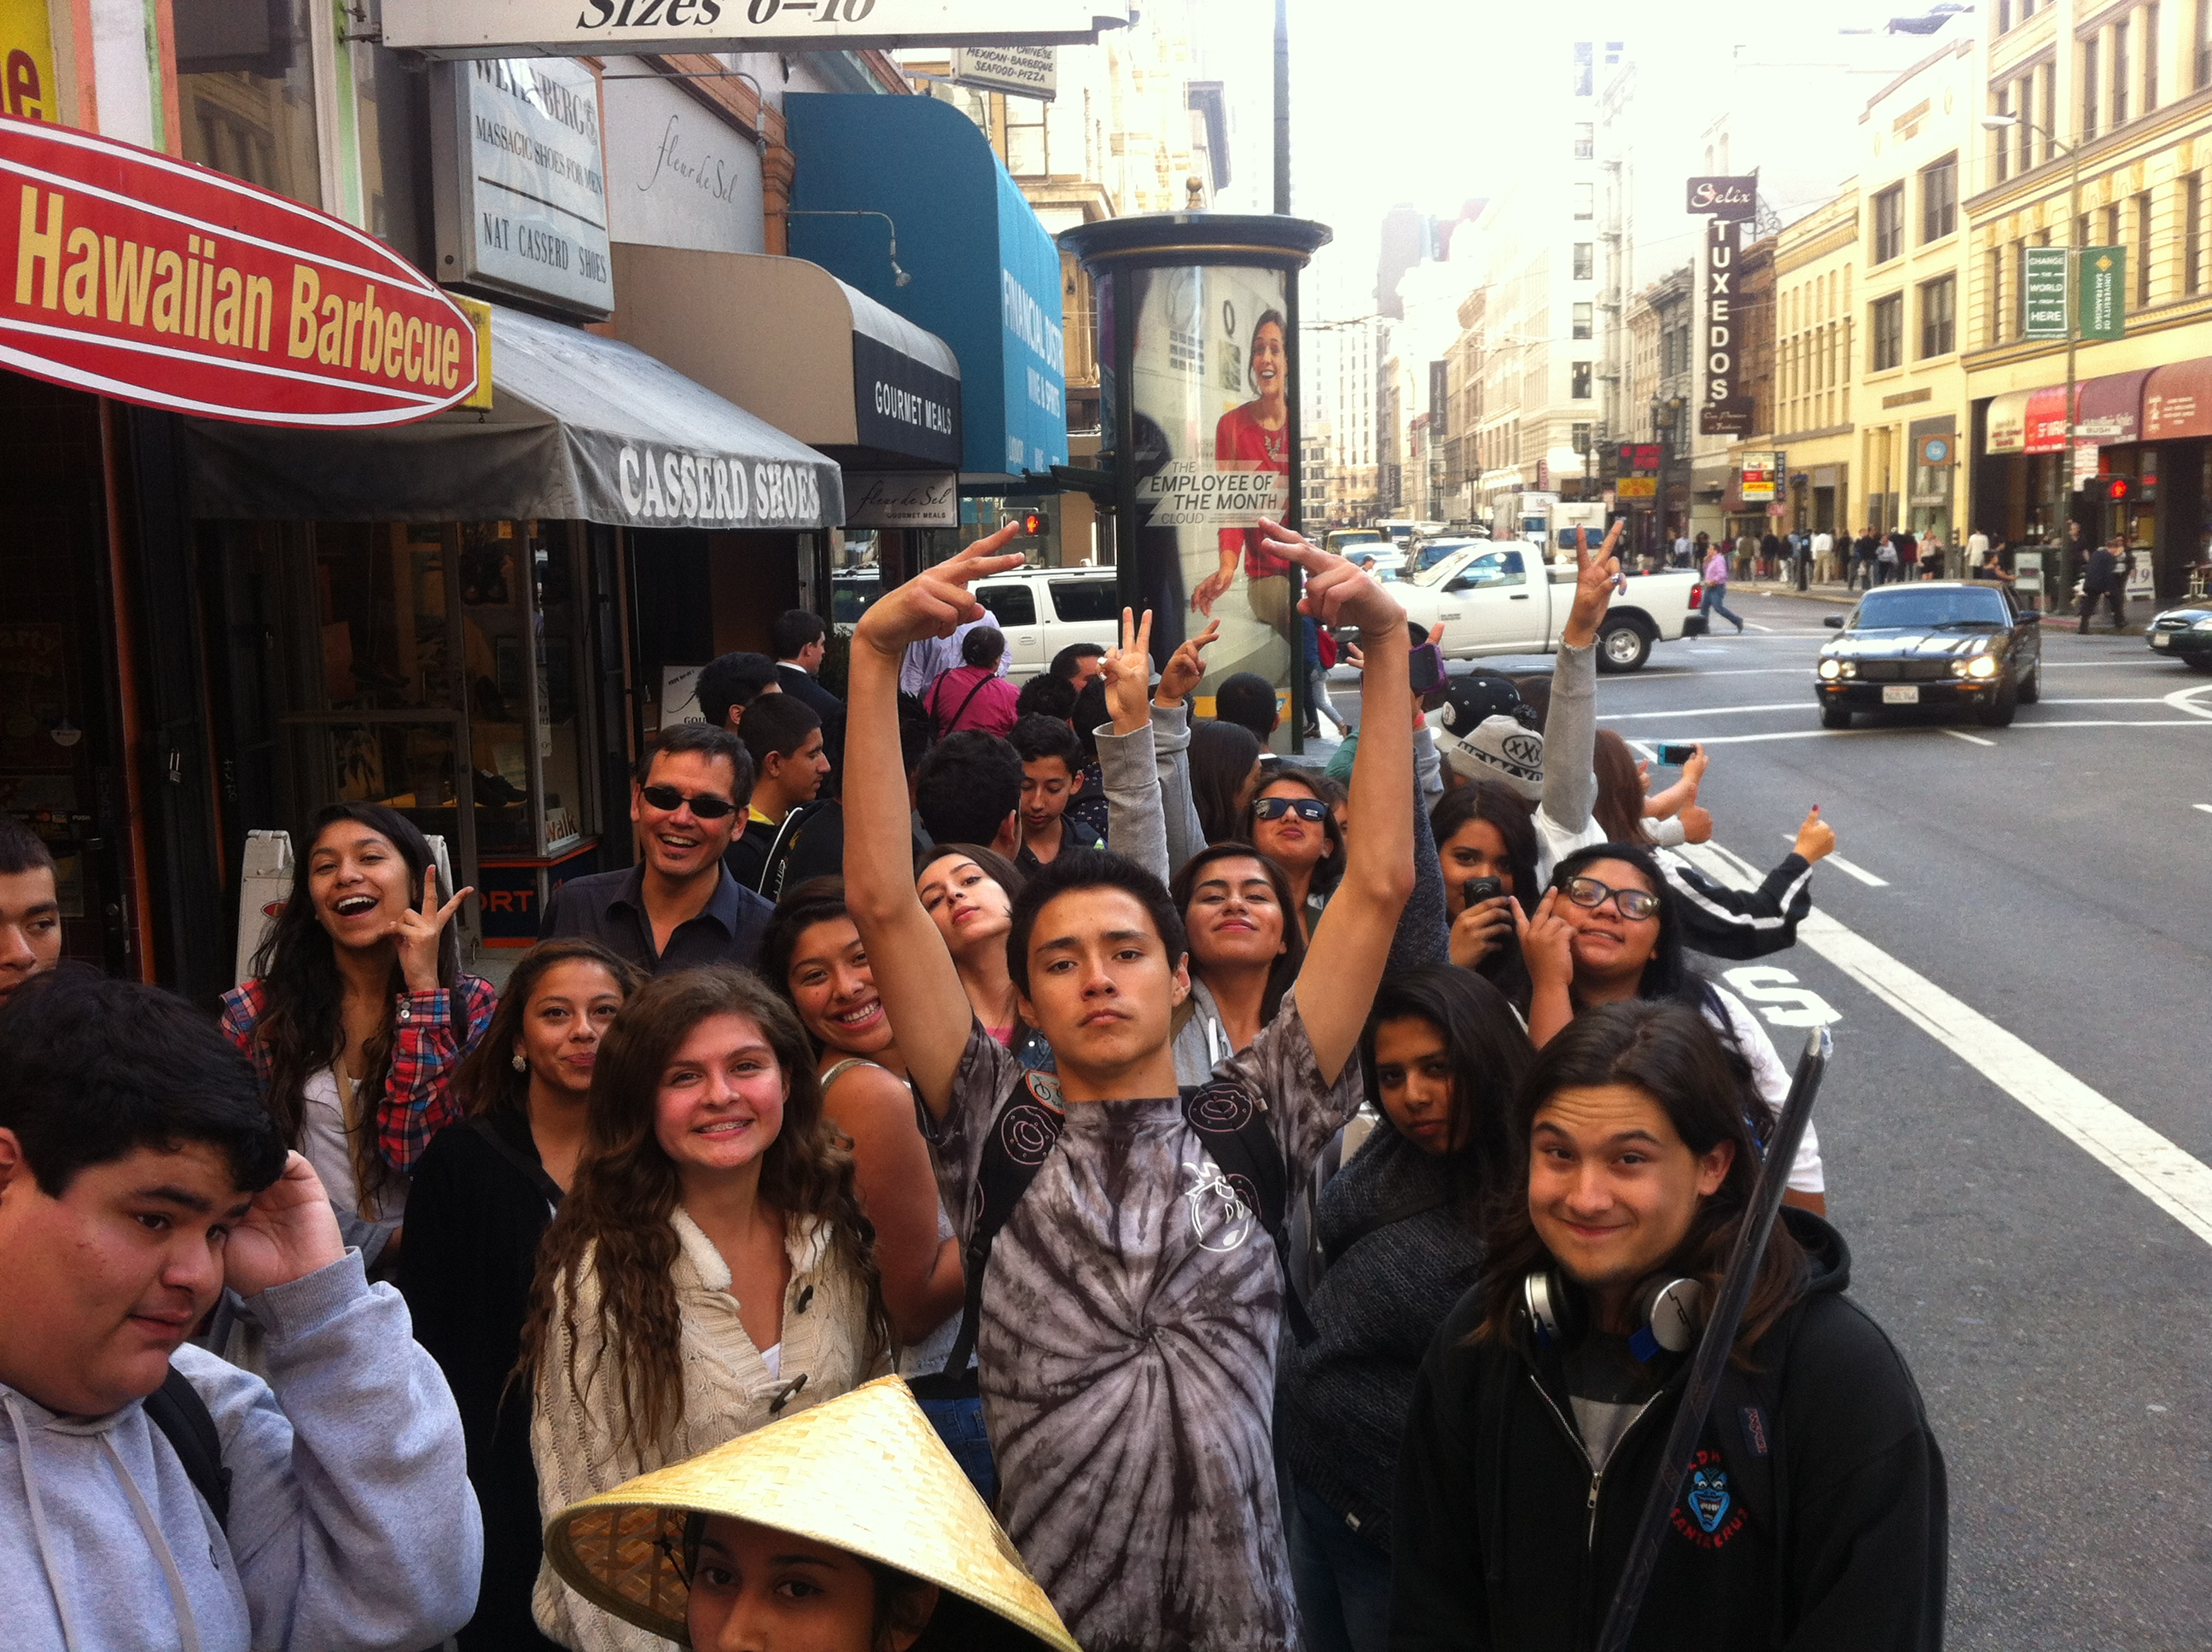 WHS in Chinatown for a scavenger hunt!